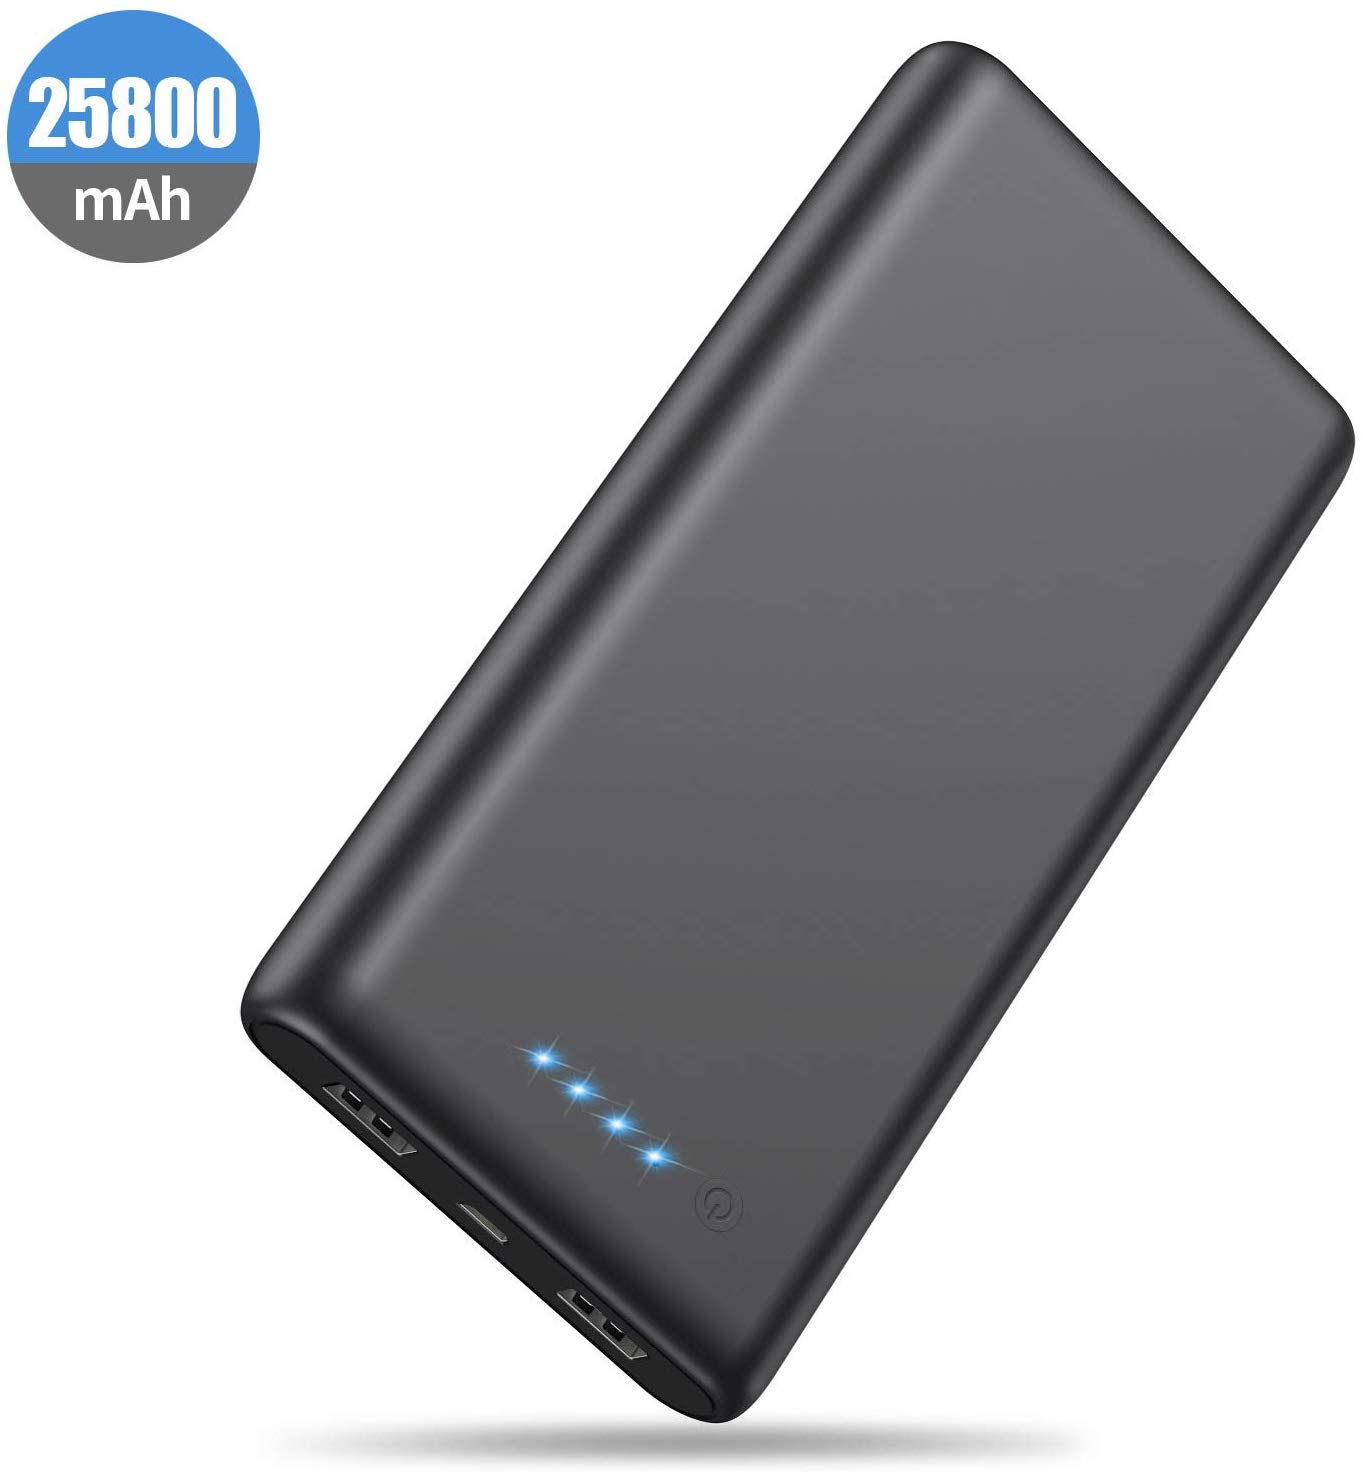 Power Bank, Portable Charger